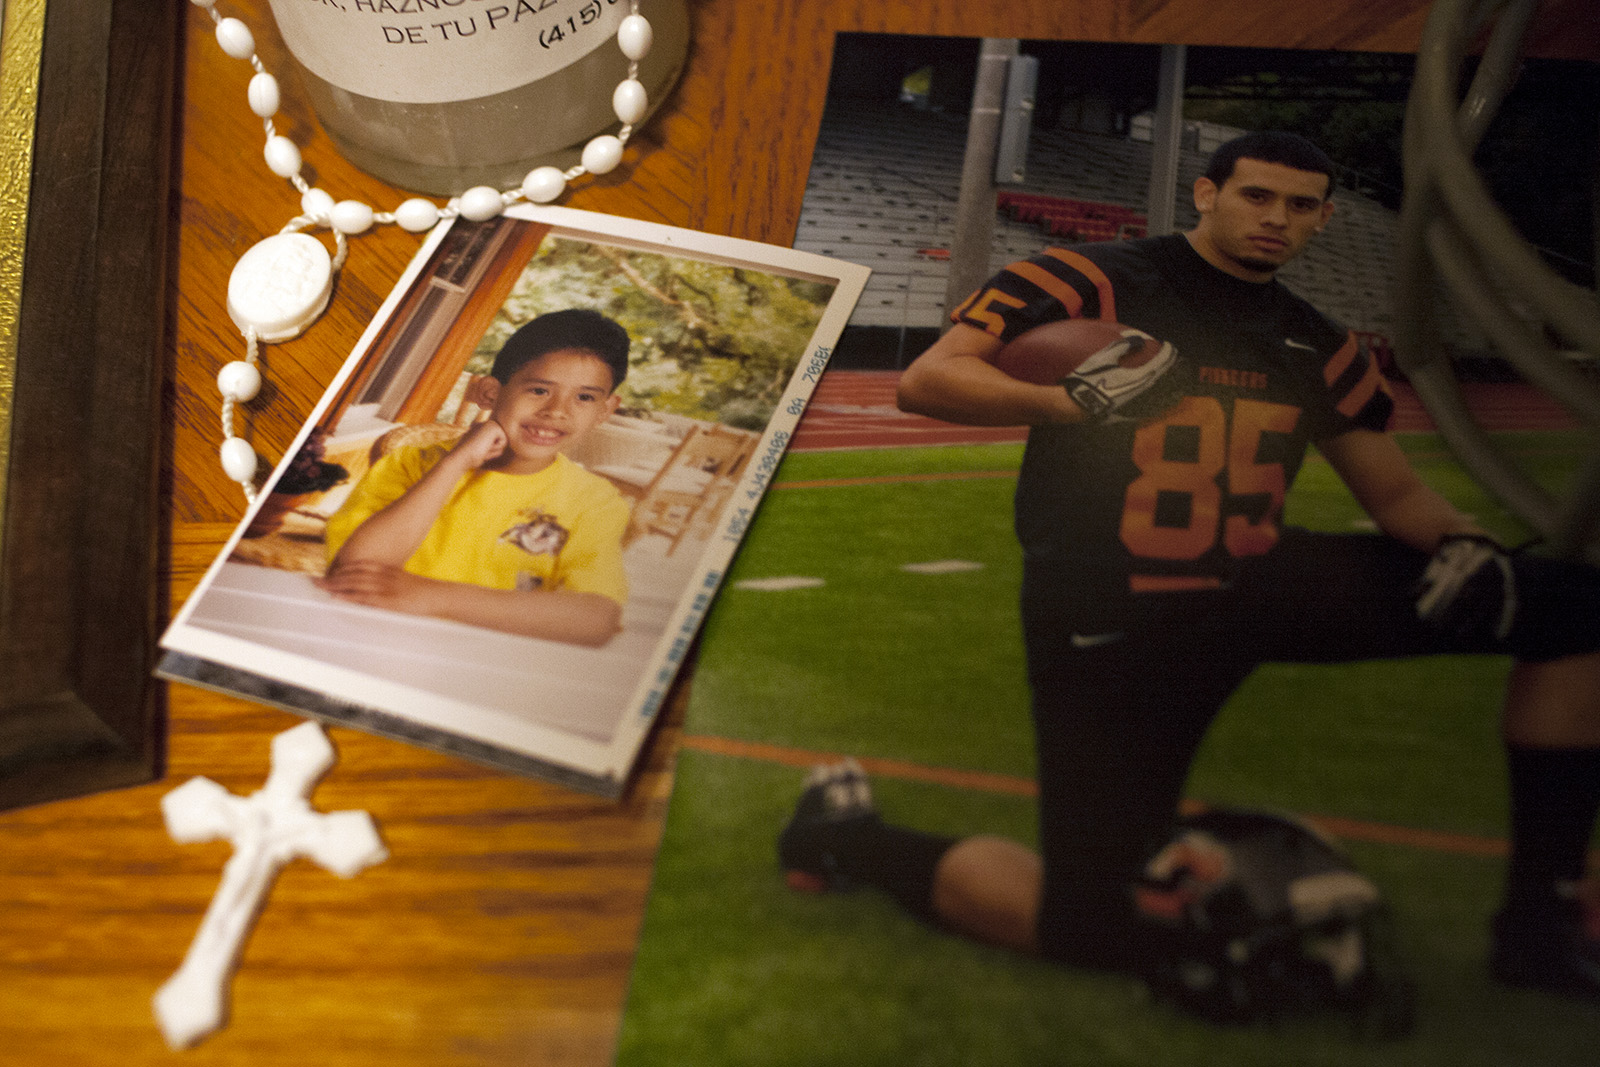 Remembering Jacob Valdiviezo, a Community Rallies